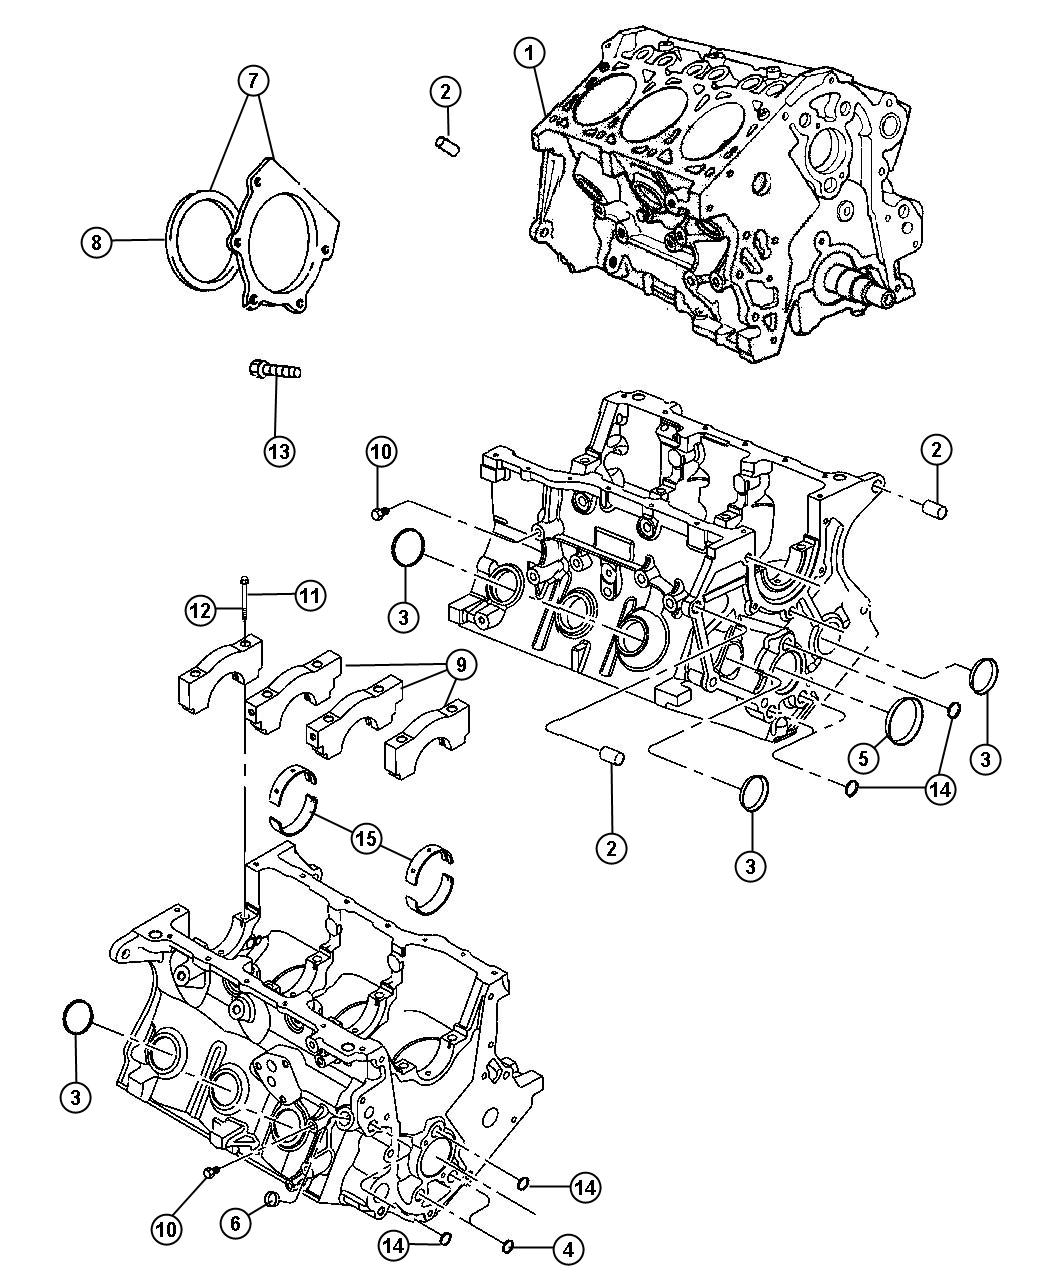 tags: #2001 ford mustang 3 8 engine diagram#pontiac 3#ford 3#1998 buick  regal engine diagram#kia 3#hyundai genesis engine swap#gm 3800 engine  coolant